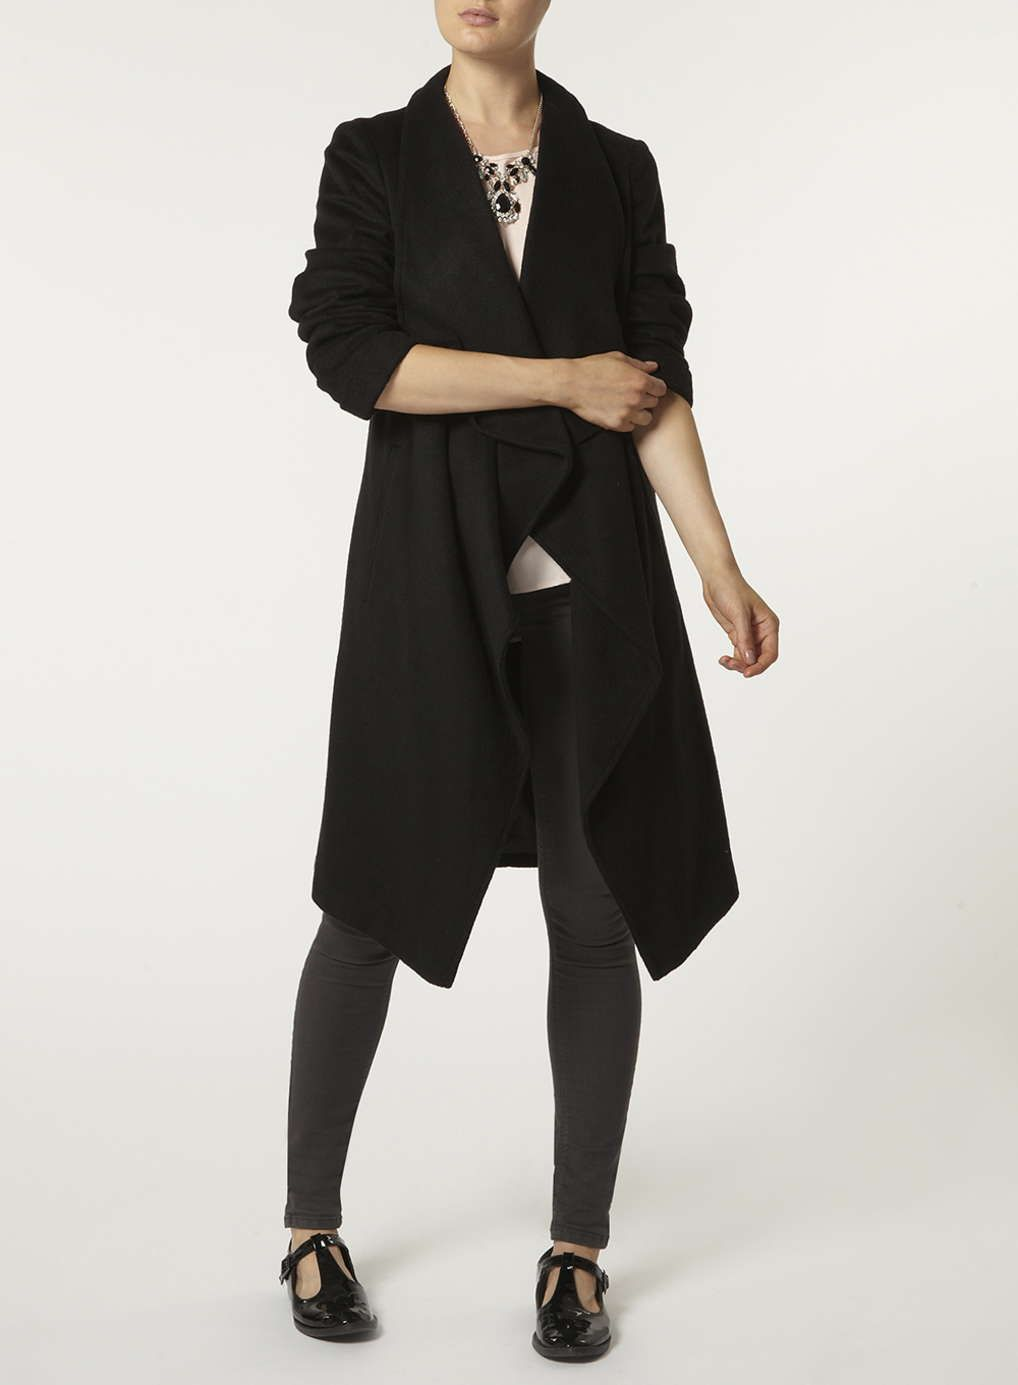 Wool Waterfall Jacket - Black Colour, Black Top and Black Pants ...